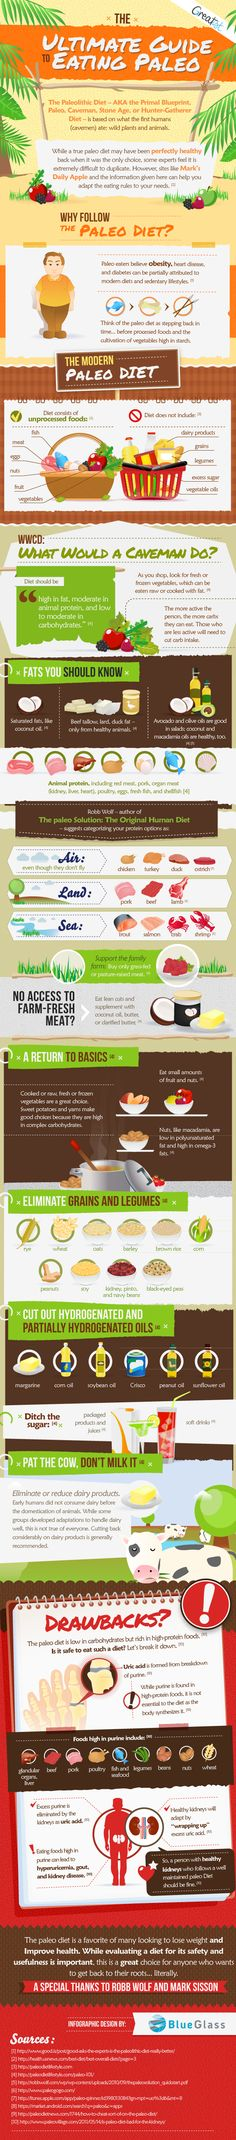 The Ultimate Guide to Eating Paleo (infographic)